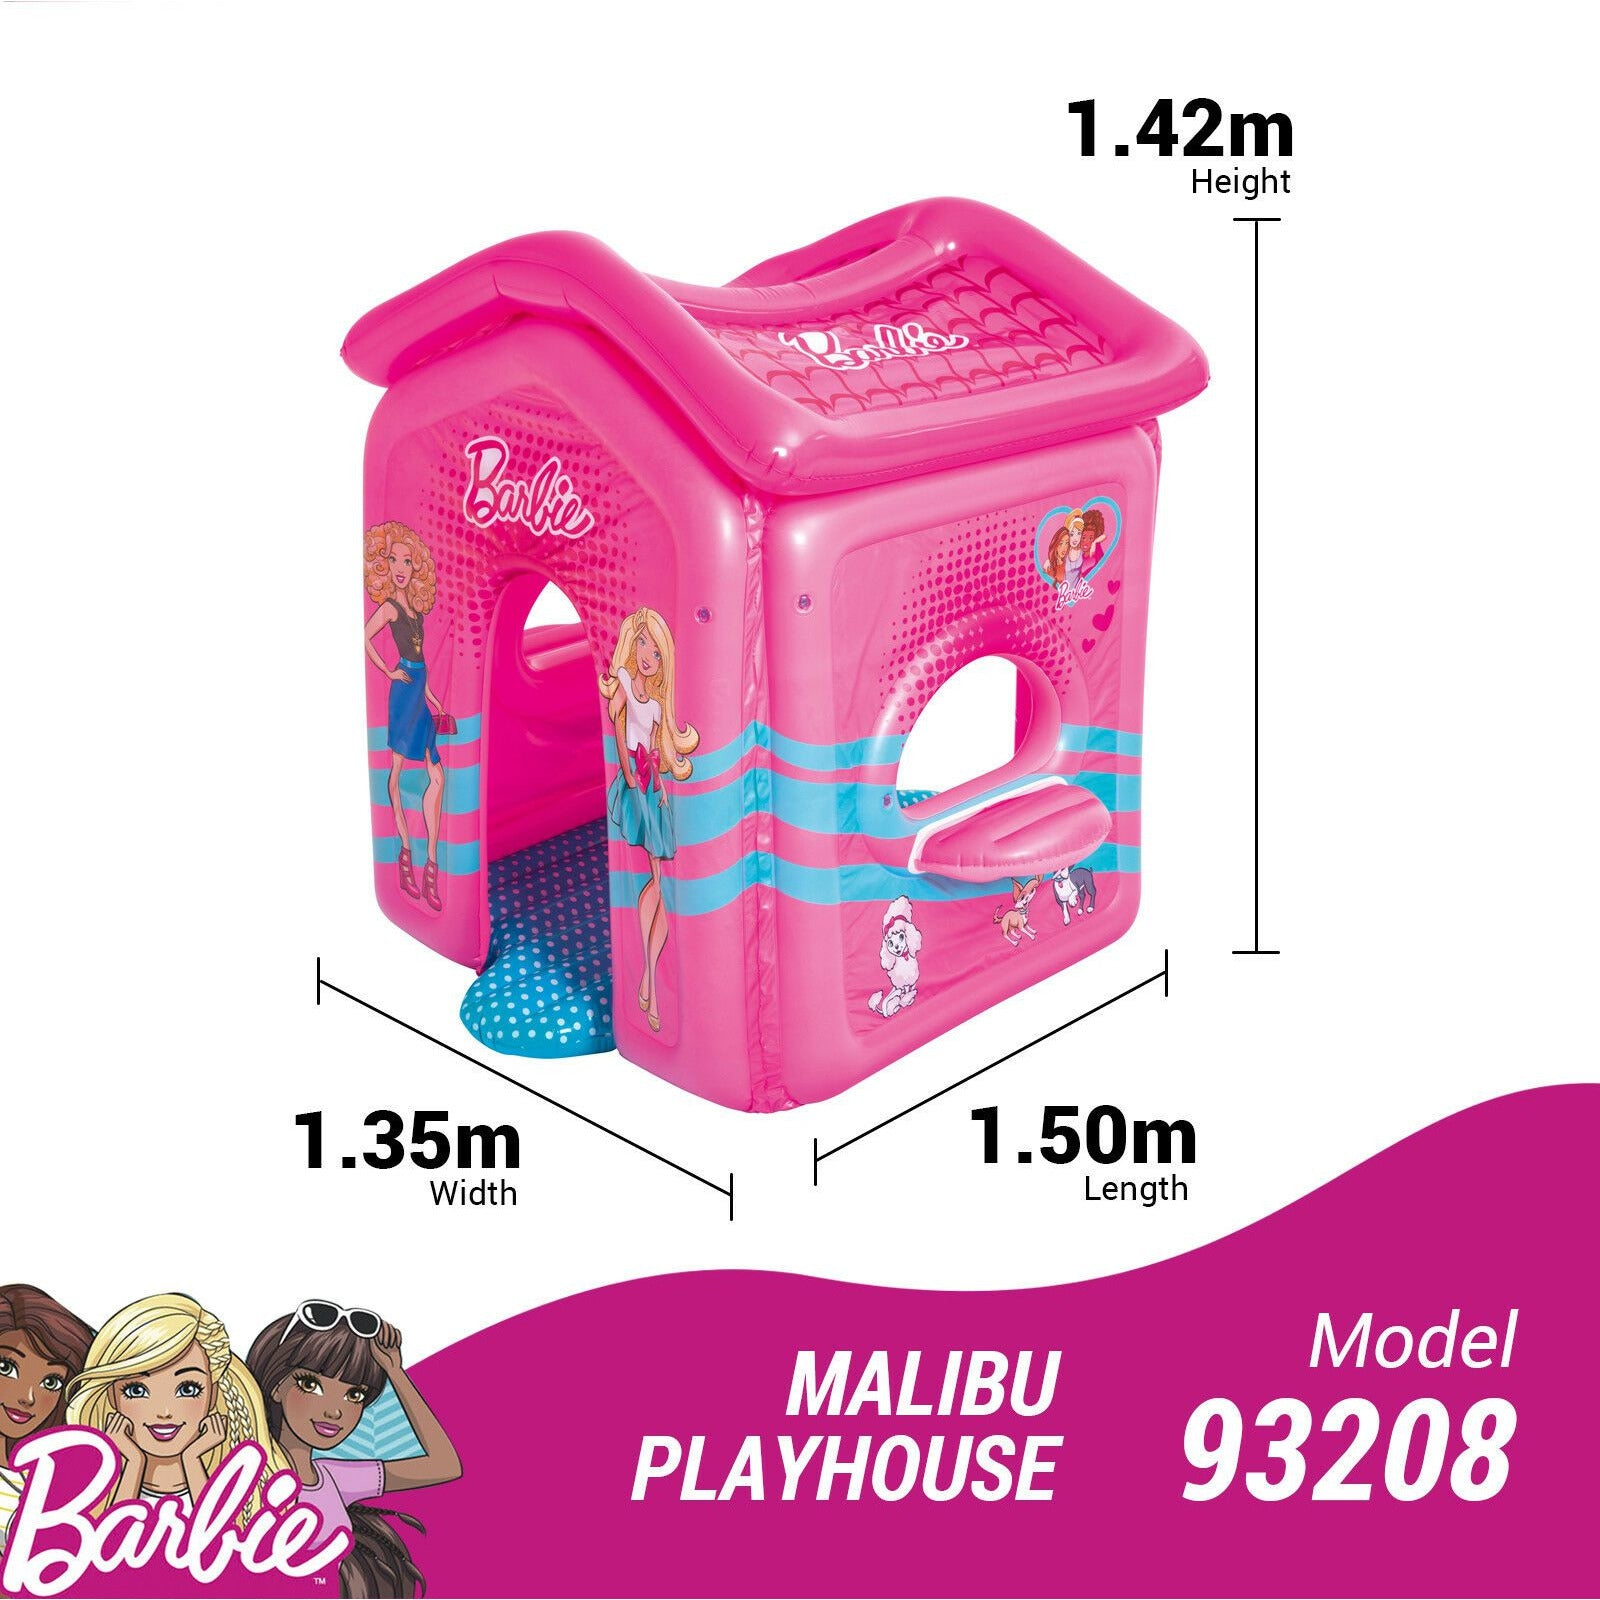 Bestway Barbie Malibu Playhouse